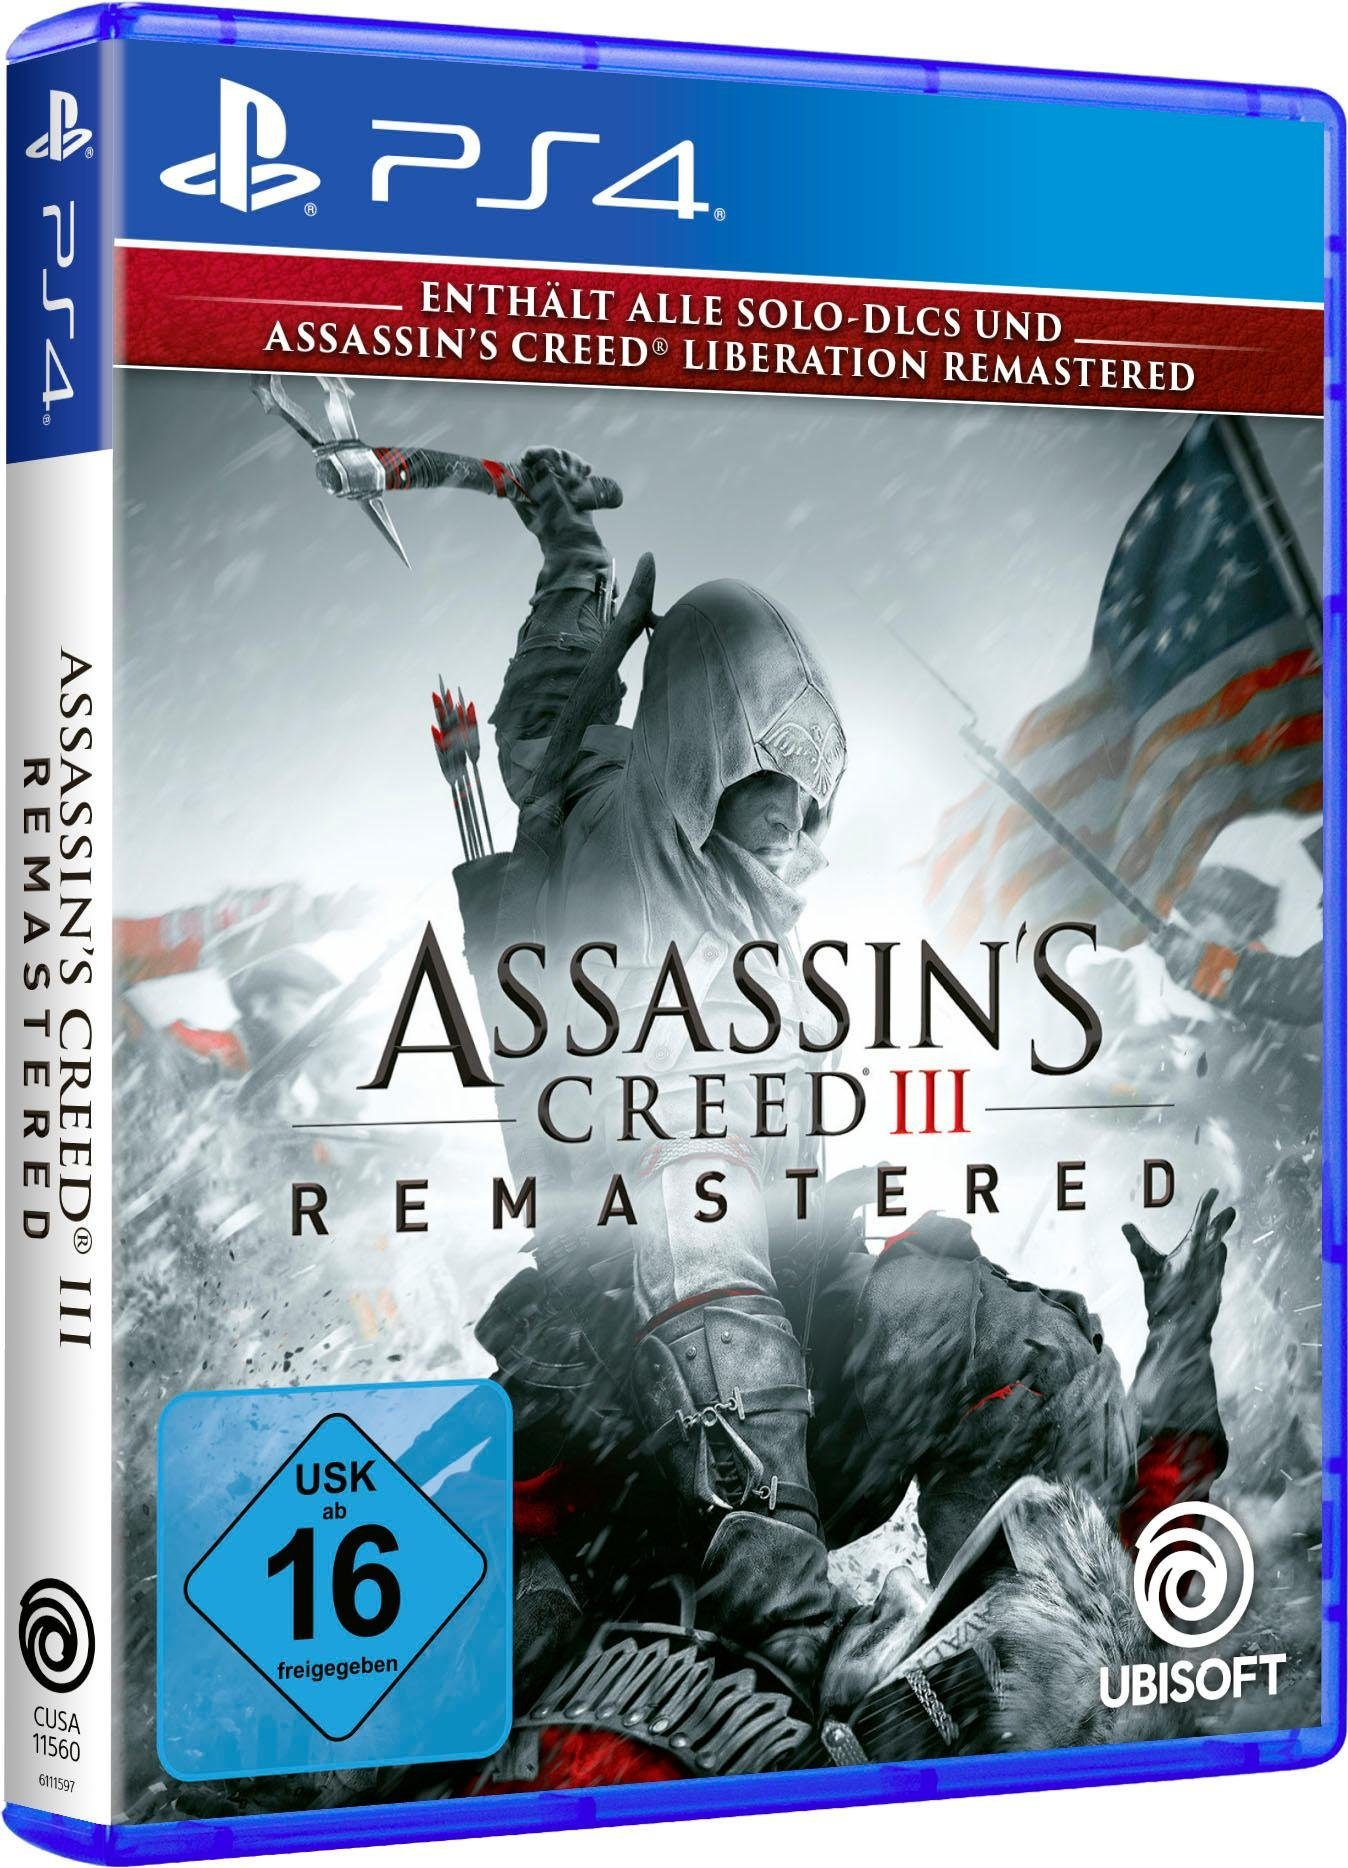 Assassin's Creed 3 Remastered PlayStation 4